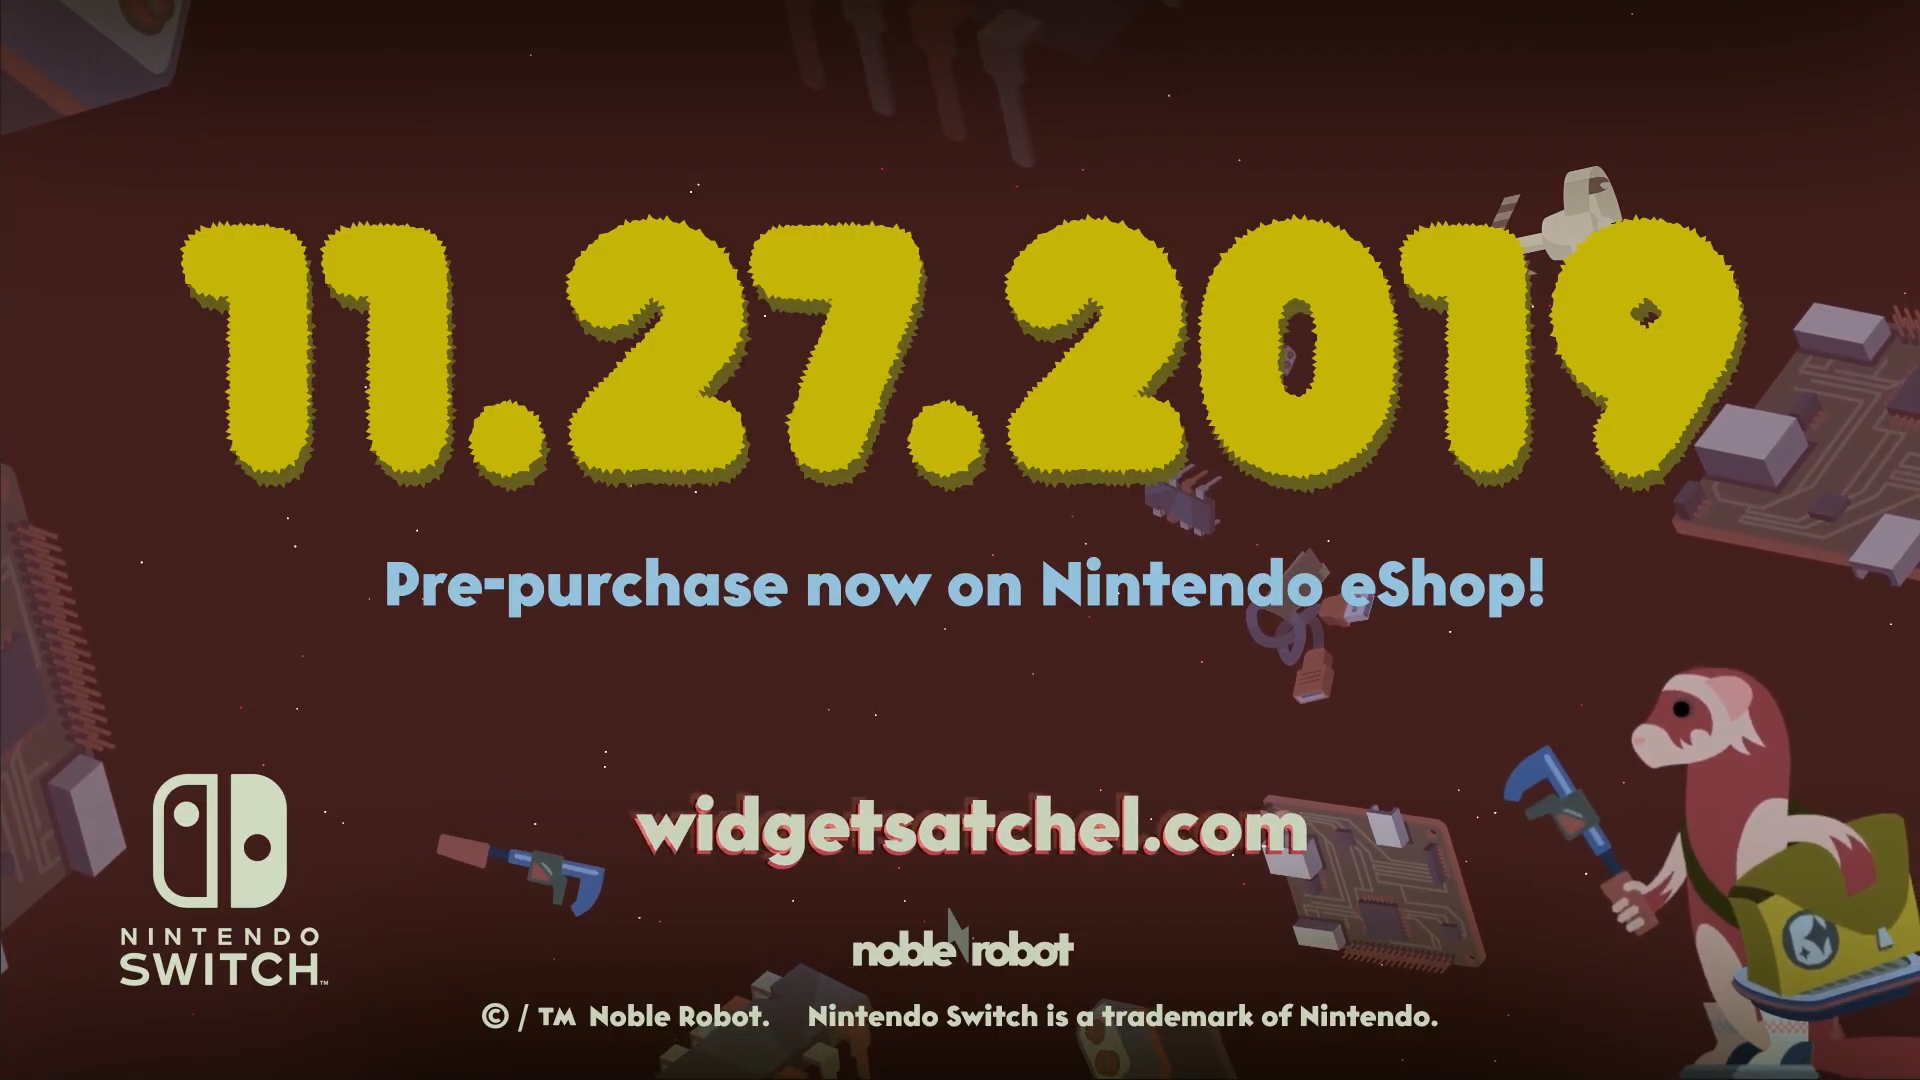 'Widget Satchel' release date announced, coming to Switch on November 27th